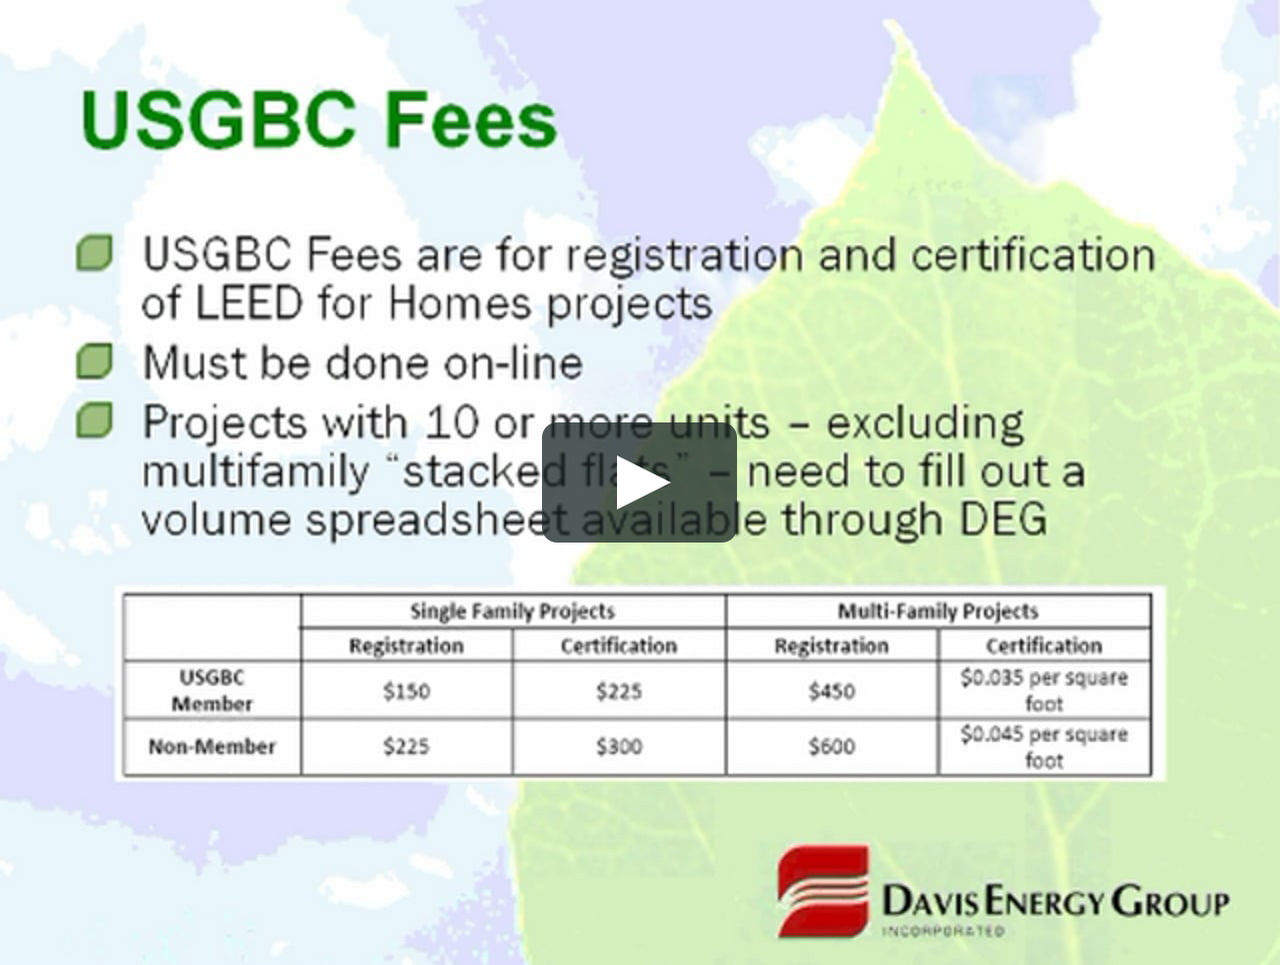 Leed for homes presentation on vimeo for Leed for homes provider